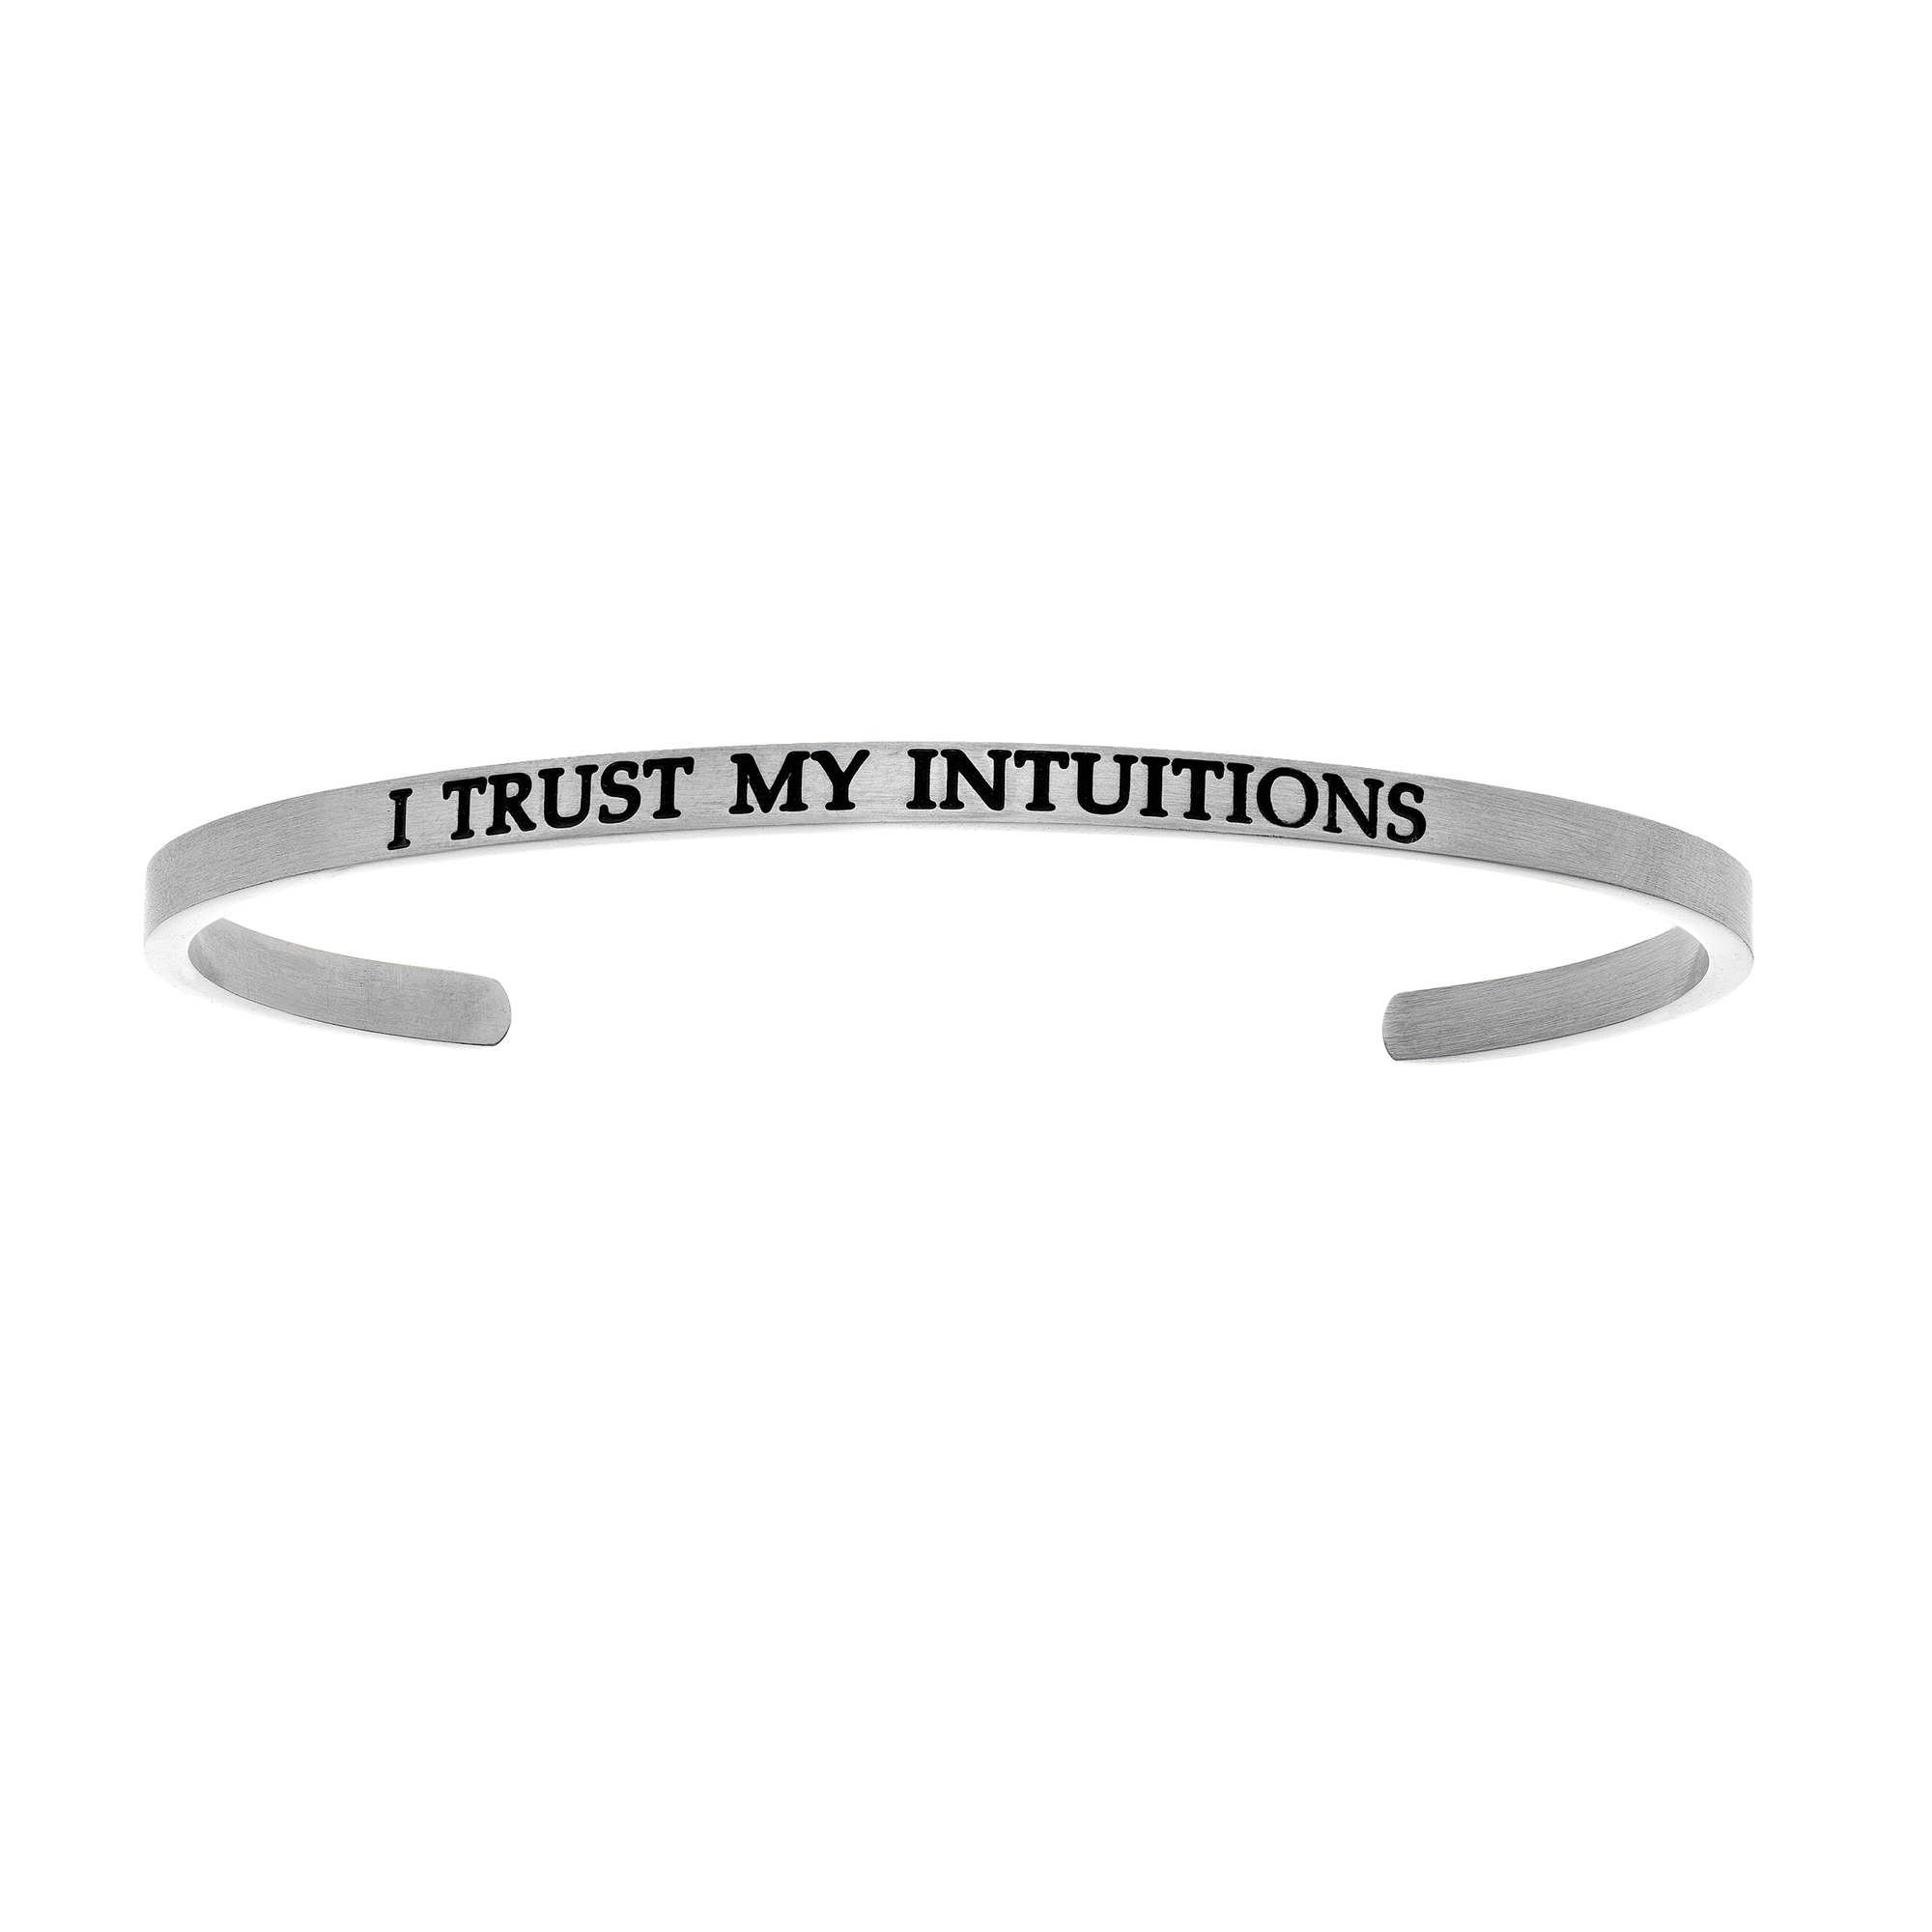 Intuitions Stainless Steel I TRUST MY S Diamond Accent Cuff Bangle Bracelet, 7″